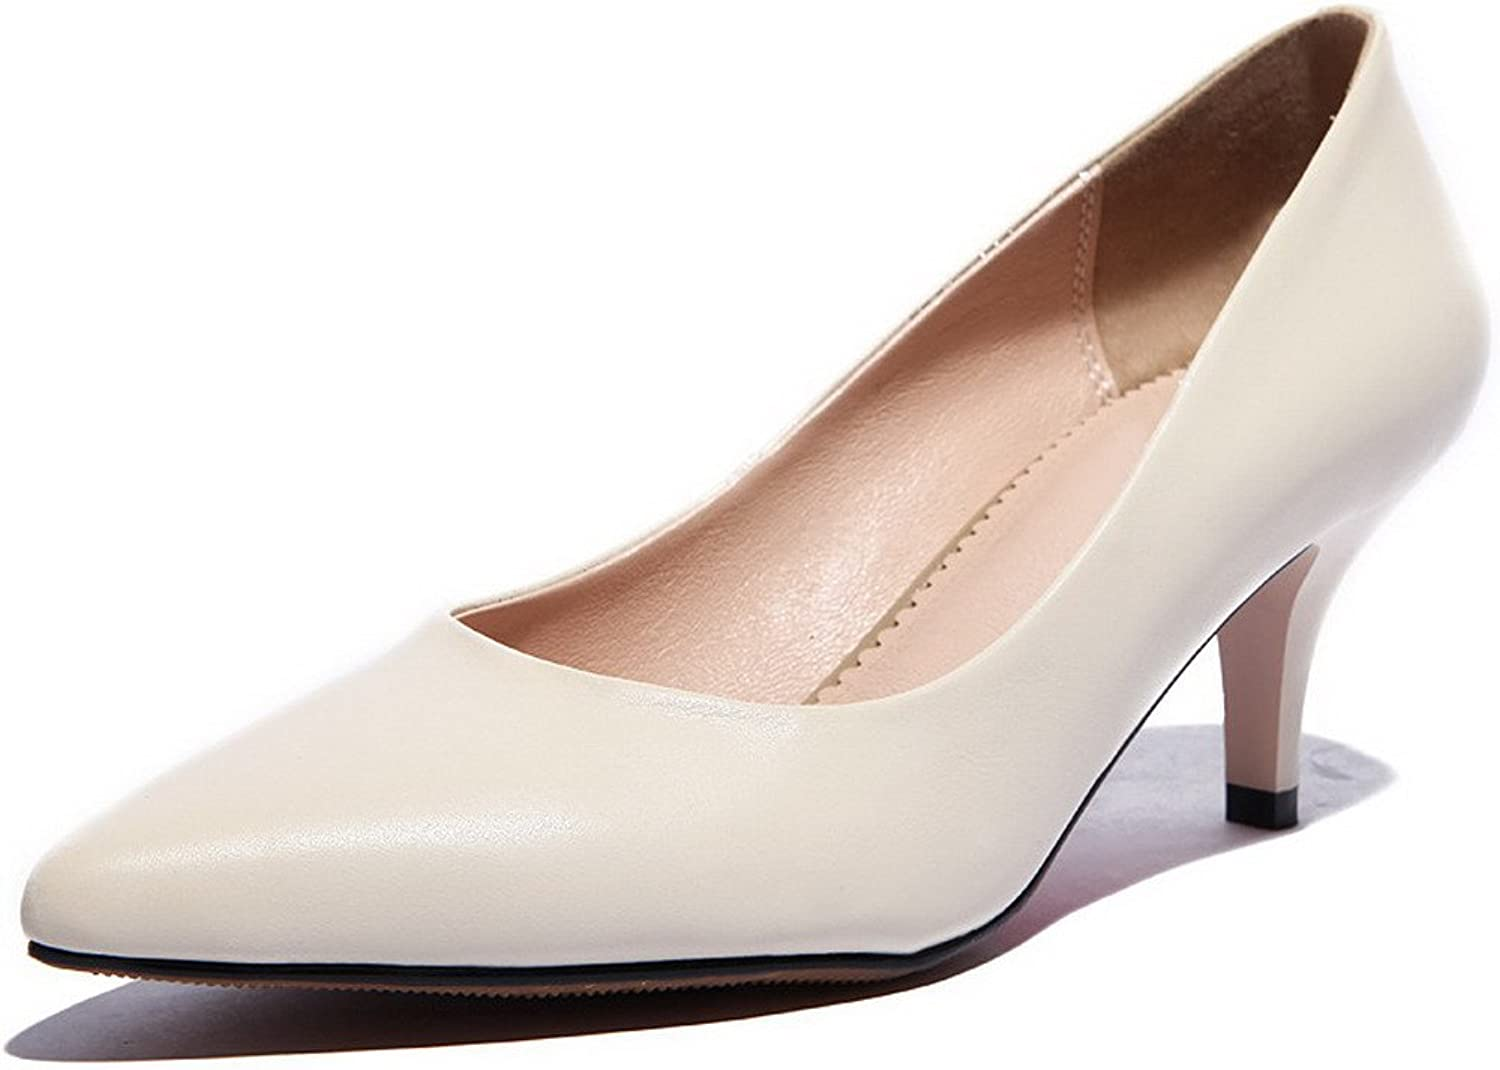 WeiPoot Women's Soft Material Solid Closed Toe Pumps with Winkle Pinker